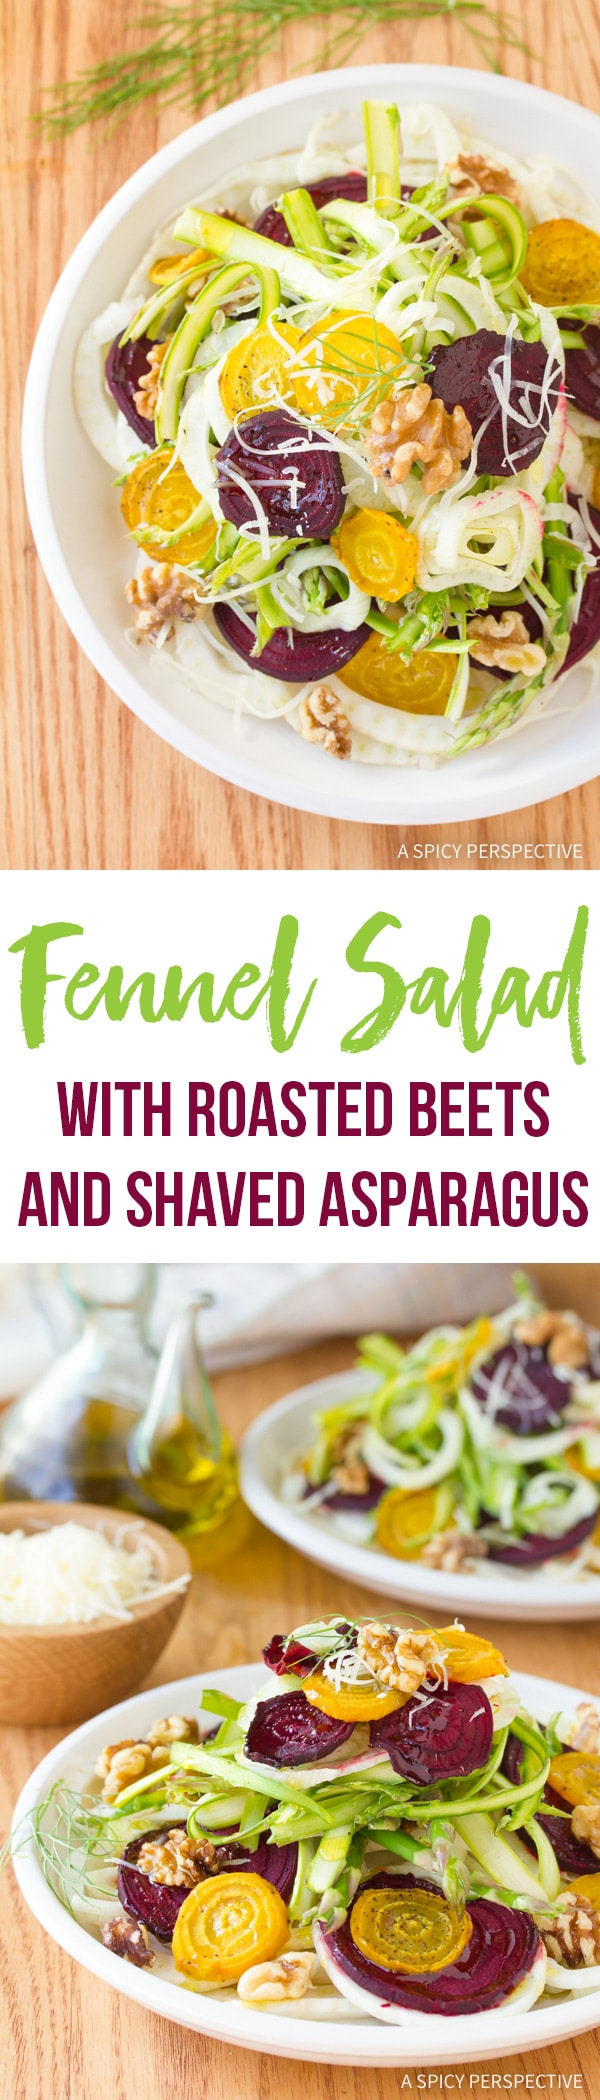 Fresh Fennel Salad with Roasted Beets and Shaved Asparagus Recipe